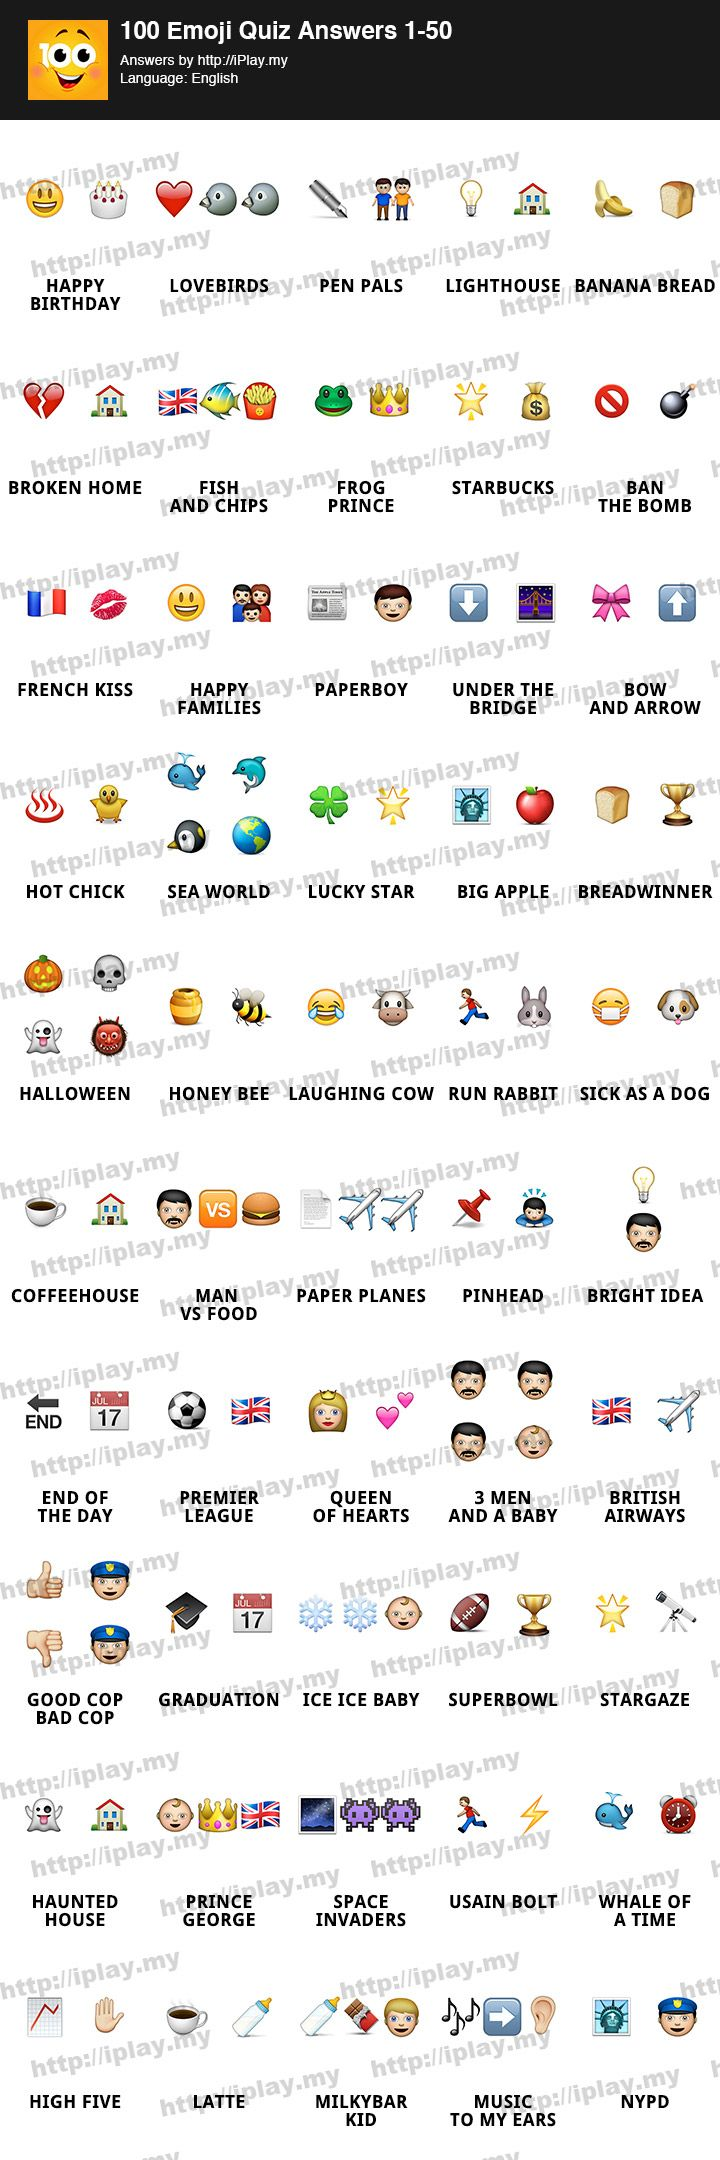 100 Emoji Quiz Answers 1 50 Other Pinterest Emoji Quiz 100